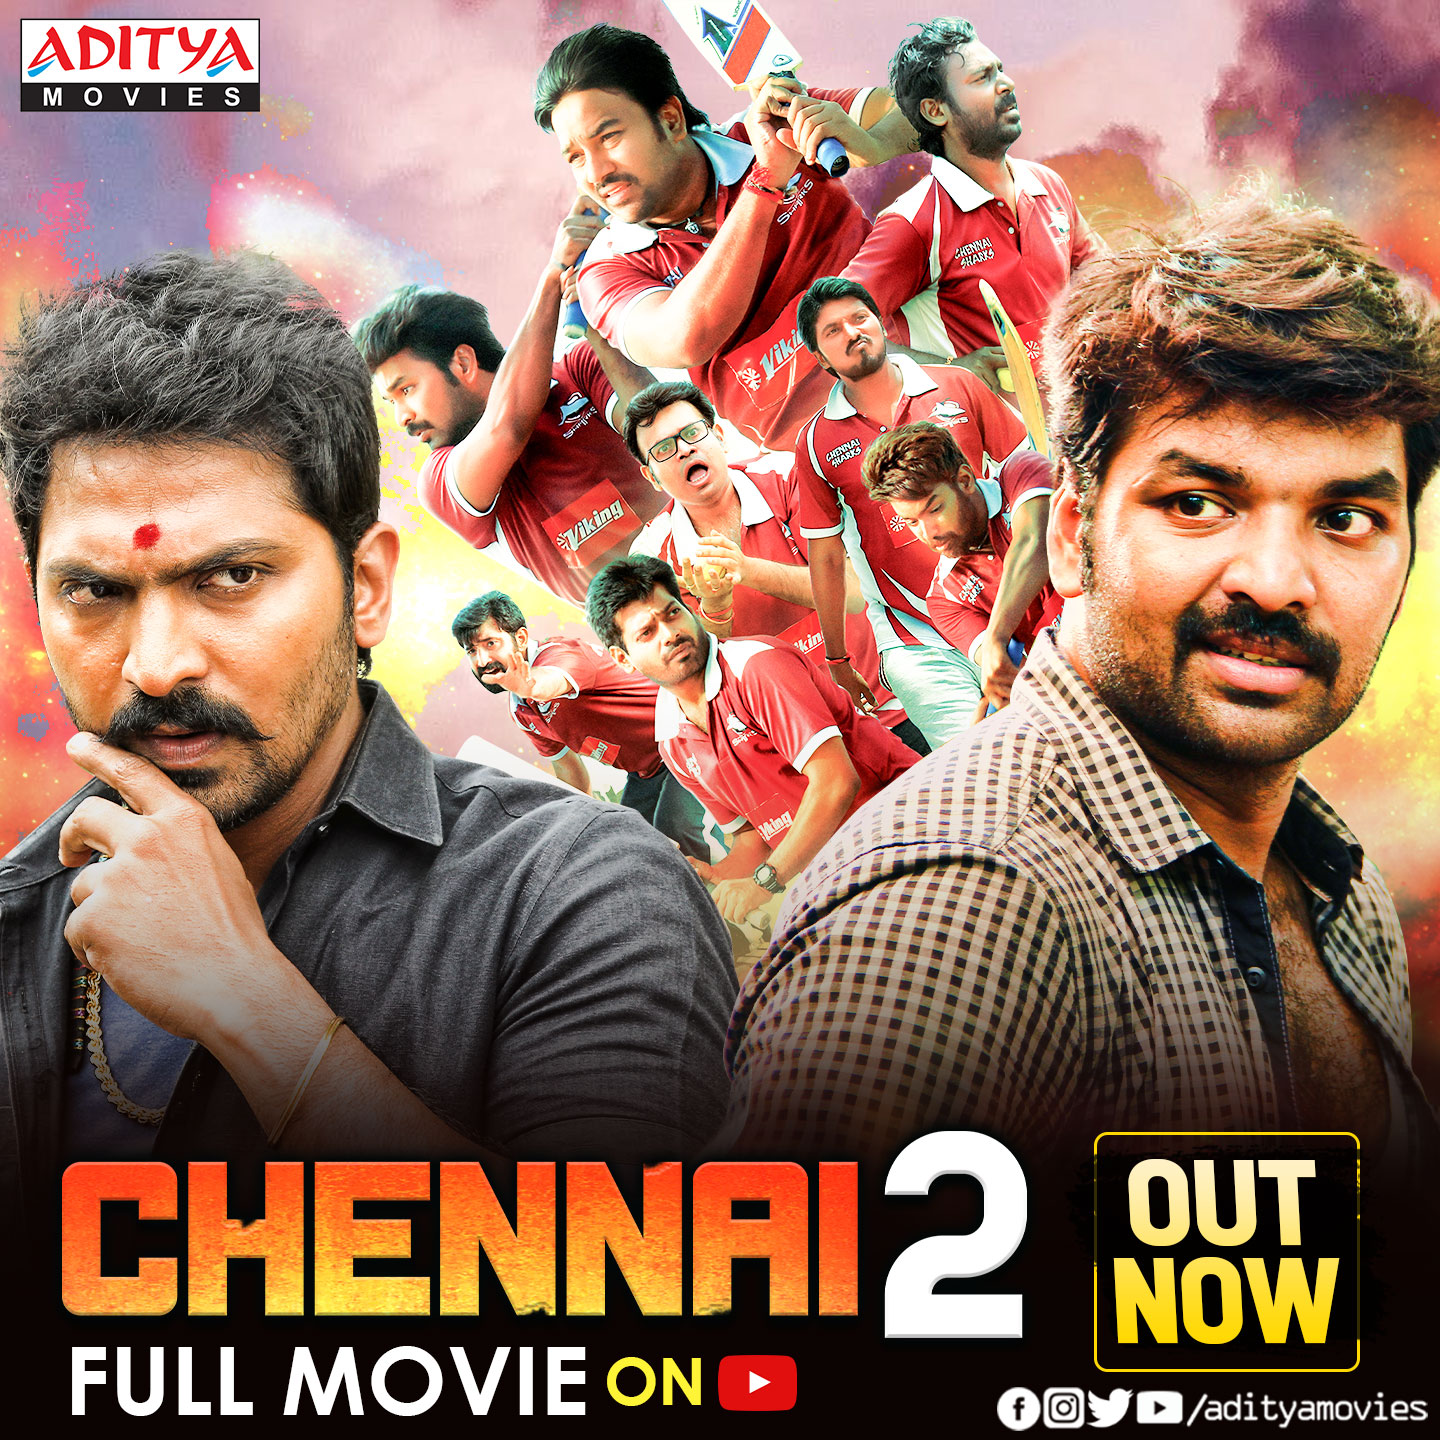 Chennai 2 (Chennai 600028 II) 2021 Hindi Dubbed 480p HDRip 400MB x264 AAC